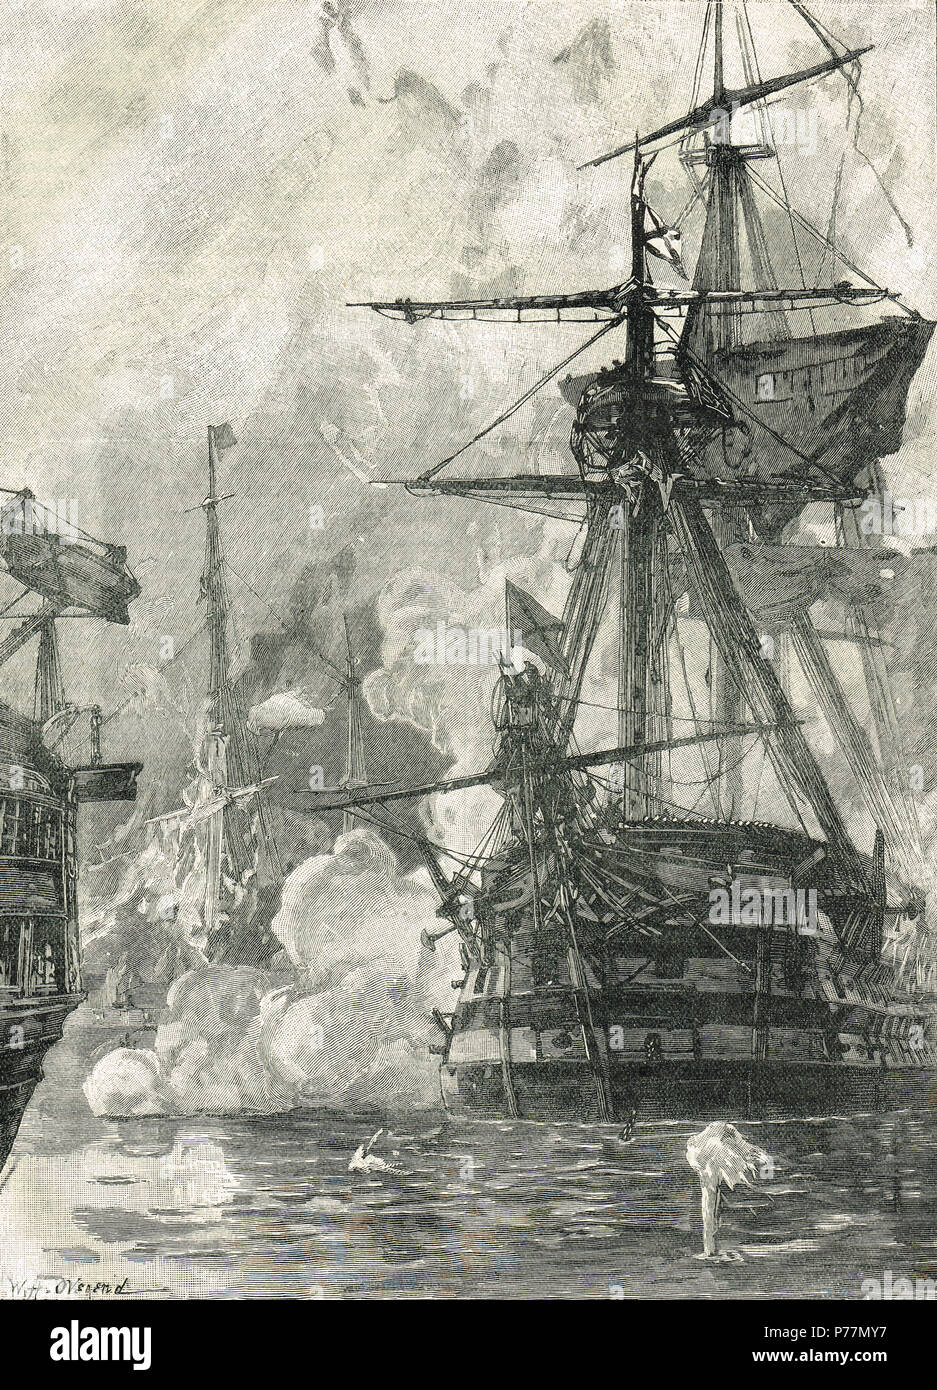 Russian attack on Sinop harbour, Turkey, 30 November 1853.  The Battle of Sinop, or the Battle of Sinope.  A Russian naval victory over the Ottoman Empire during the Crimean War that was a contributing factor to bringing France and Great Britain into the conflict. - Stock Image